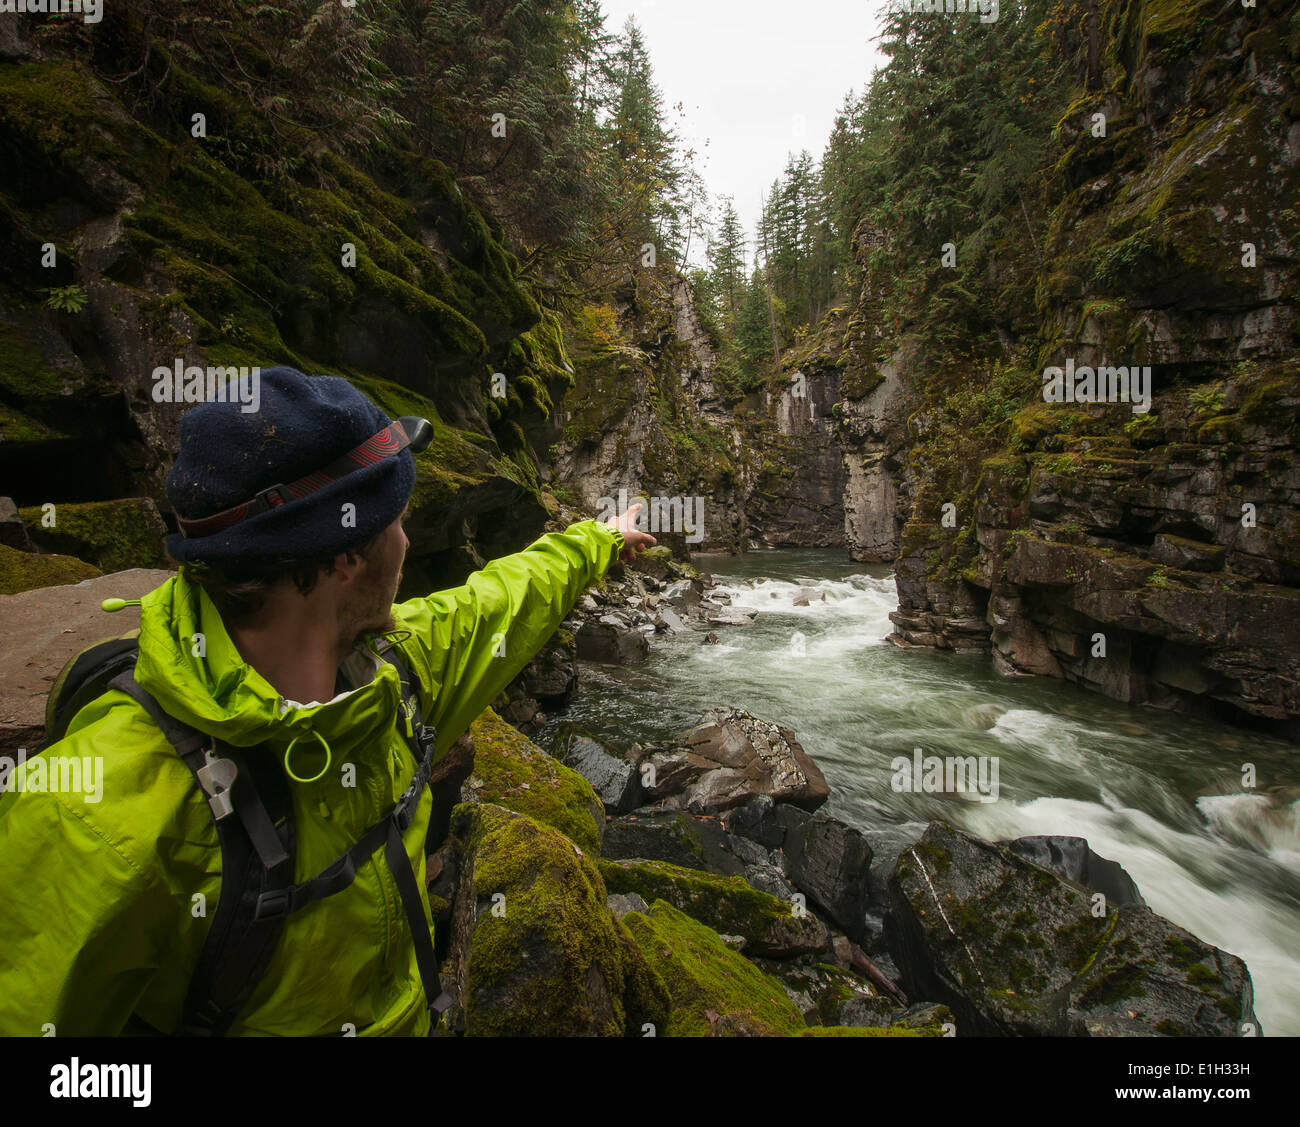 Points randonneur falaises, parc provincial de Coquihalla Canyon et Othello Tunnels, Sentier transcanadien, Hope, Colombie-Britannique, Canada Photo Stock